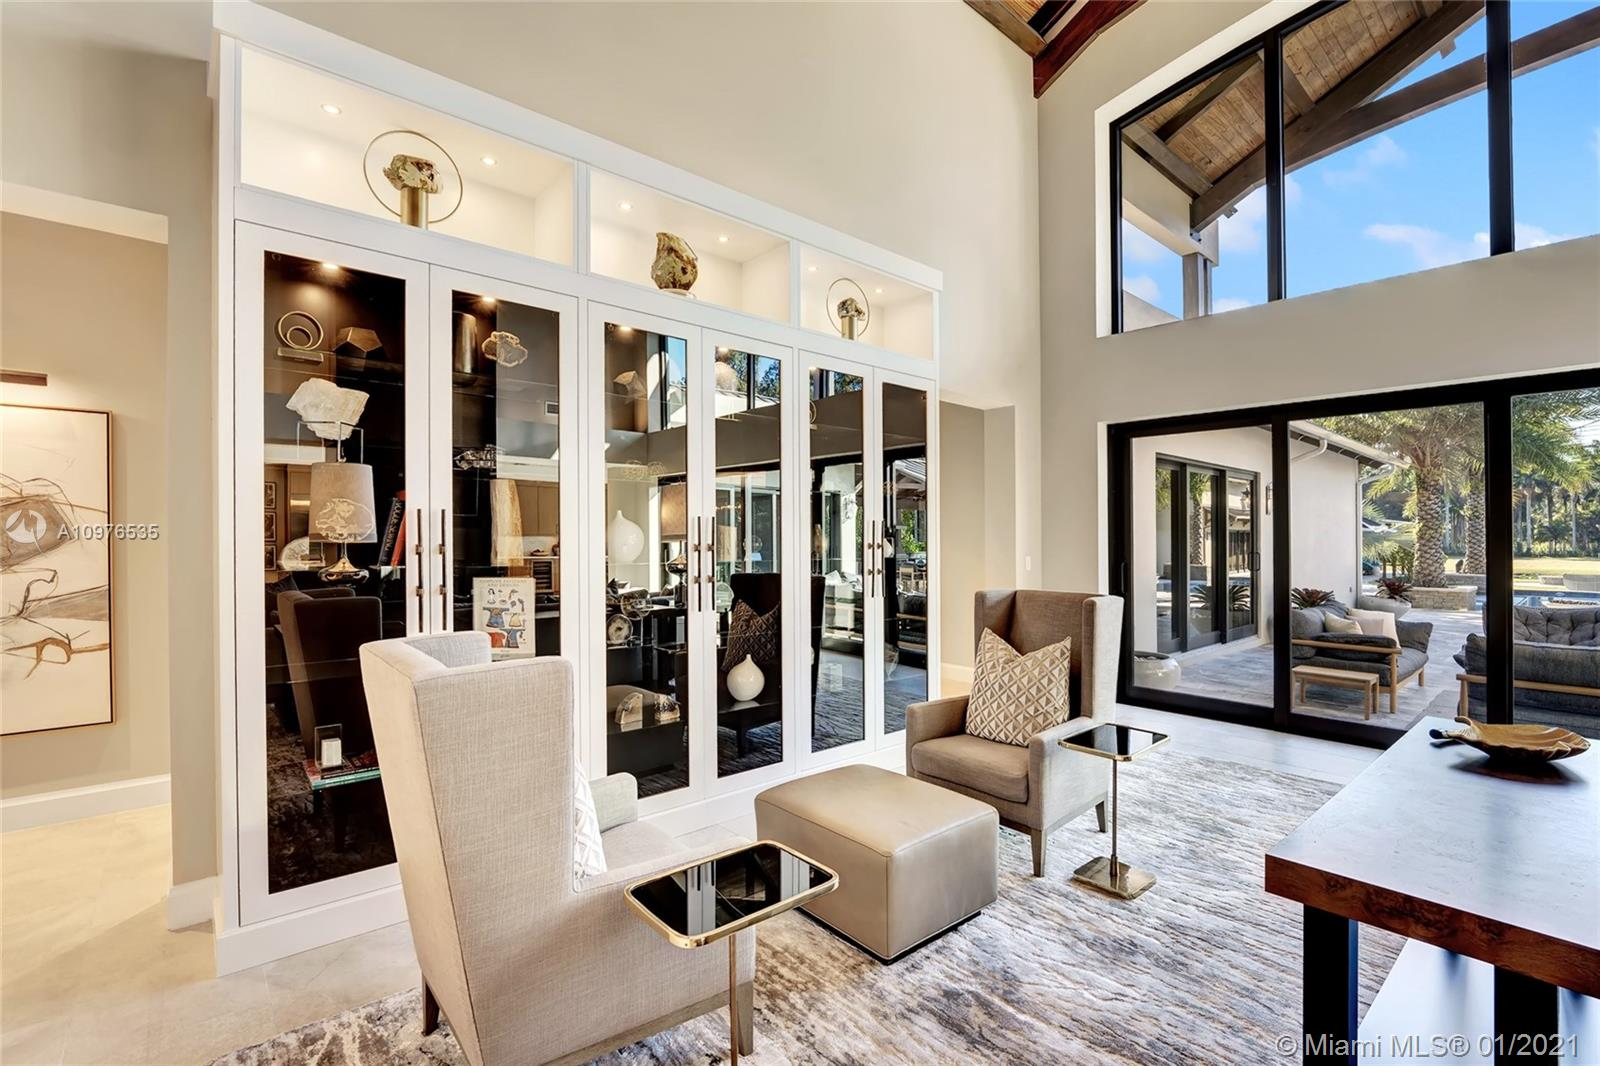 Living room, with volume ceiling, overlooks a gorgeous outdoor entertaining area.